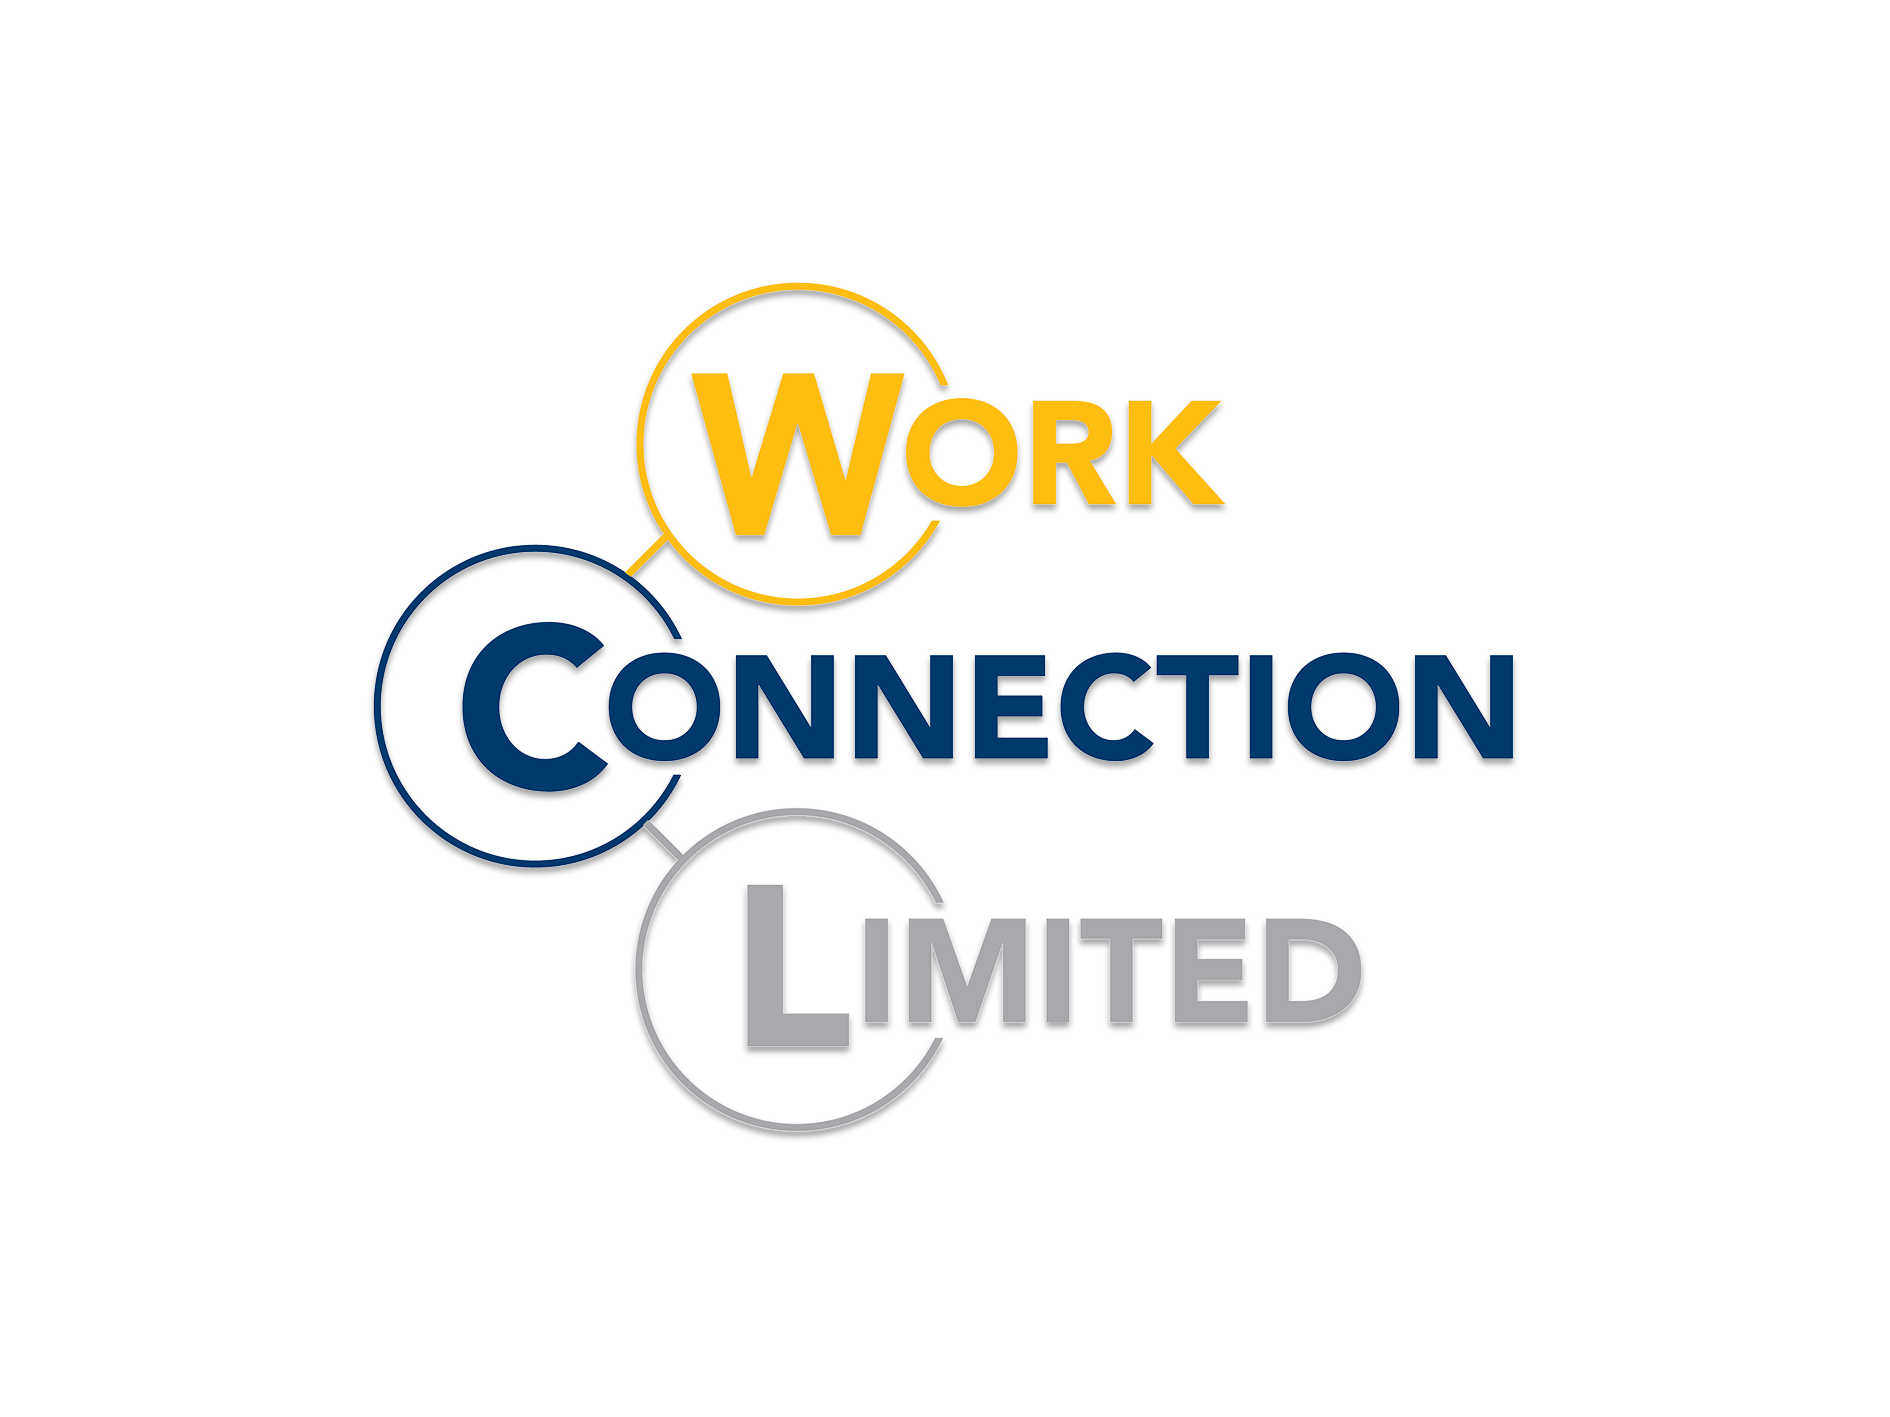 Work Connection Ltd